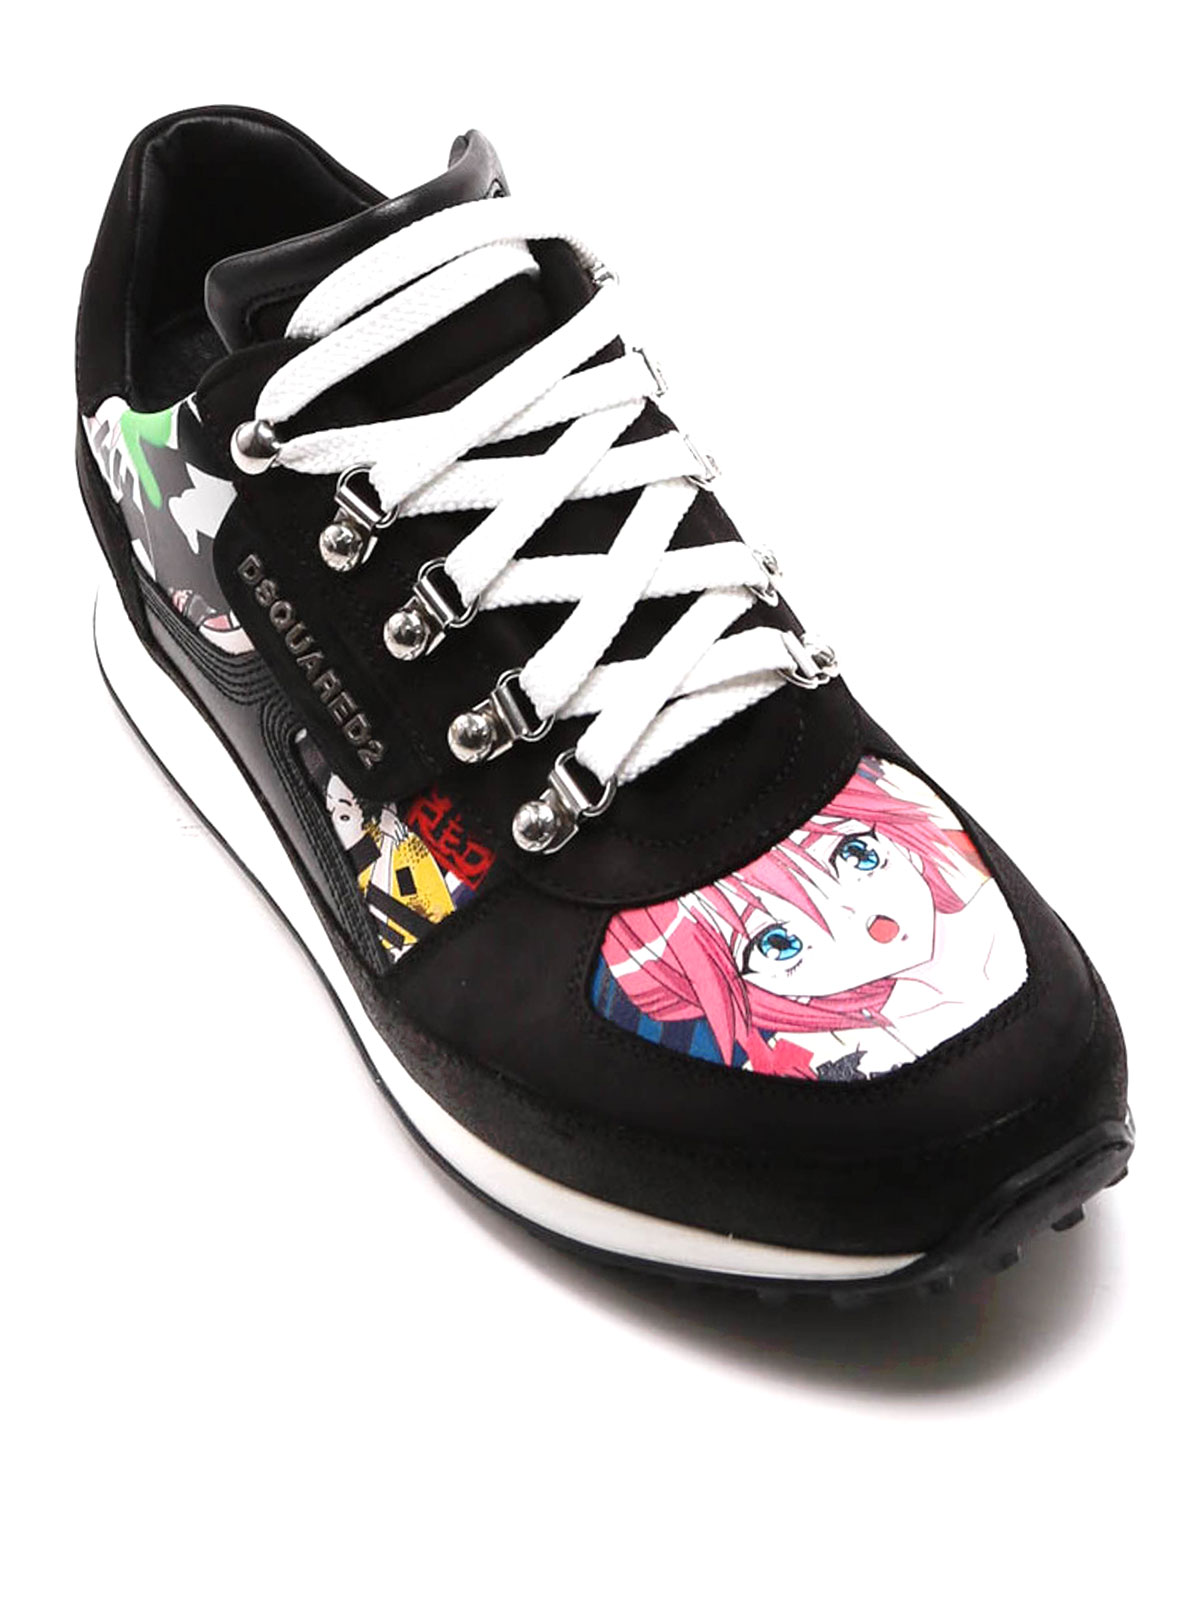 Dean Goes Hiking manga sneakers by Dsquared2 - trainers ...